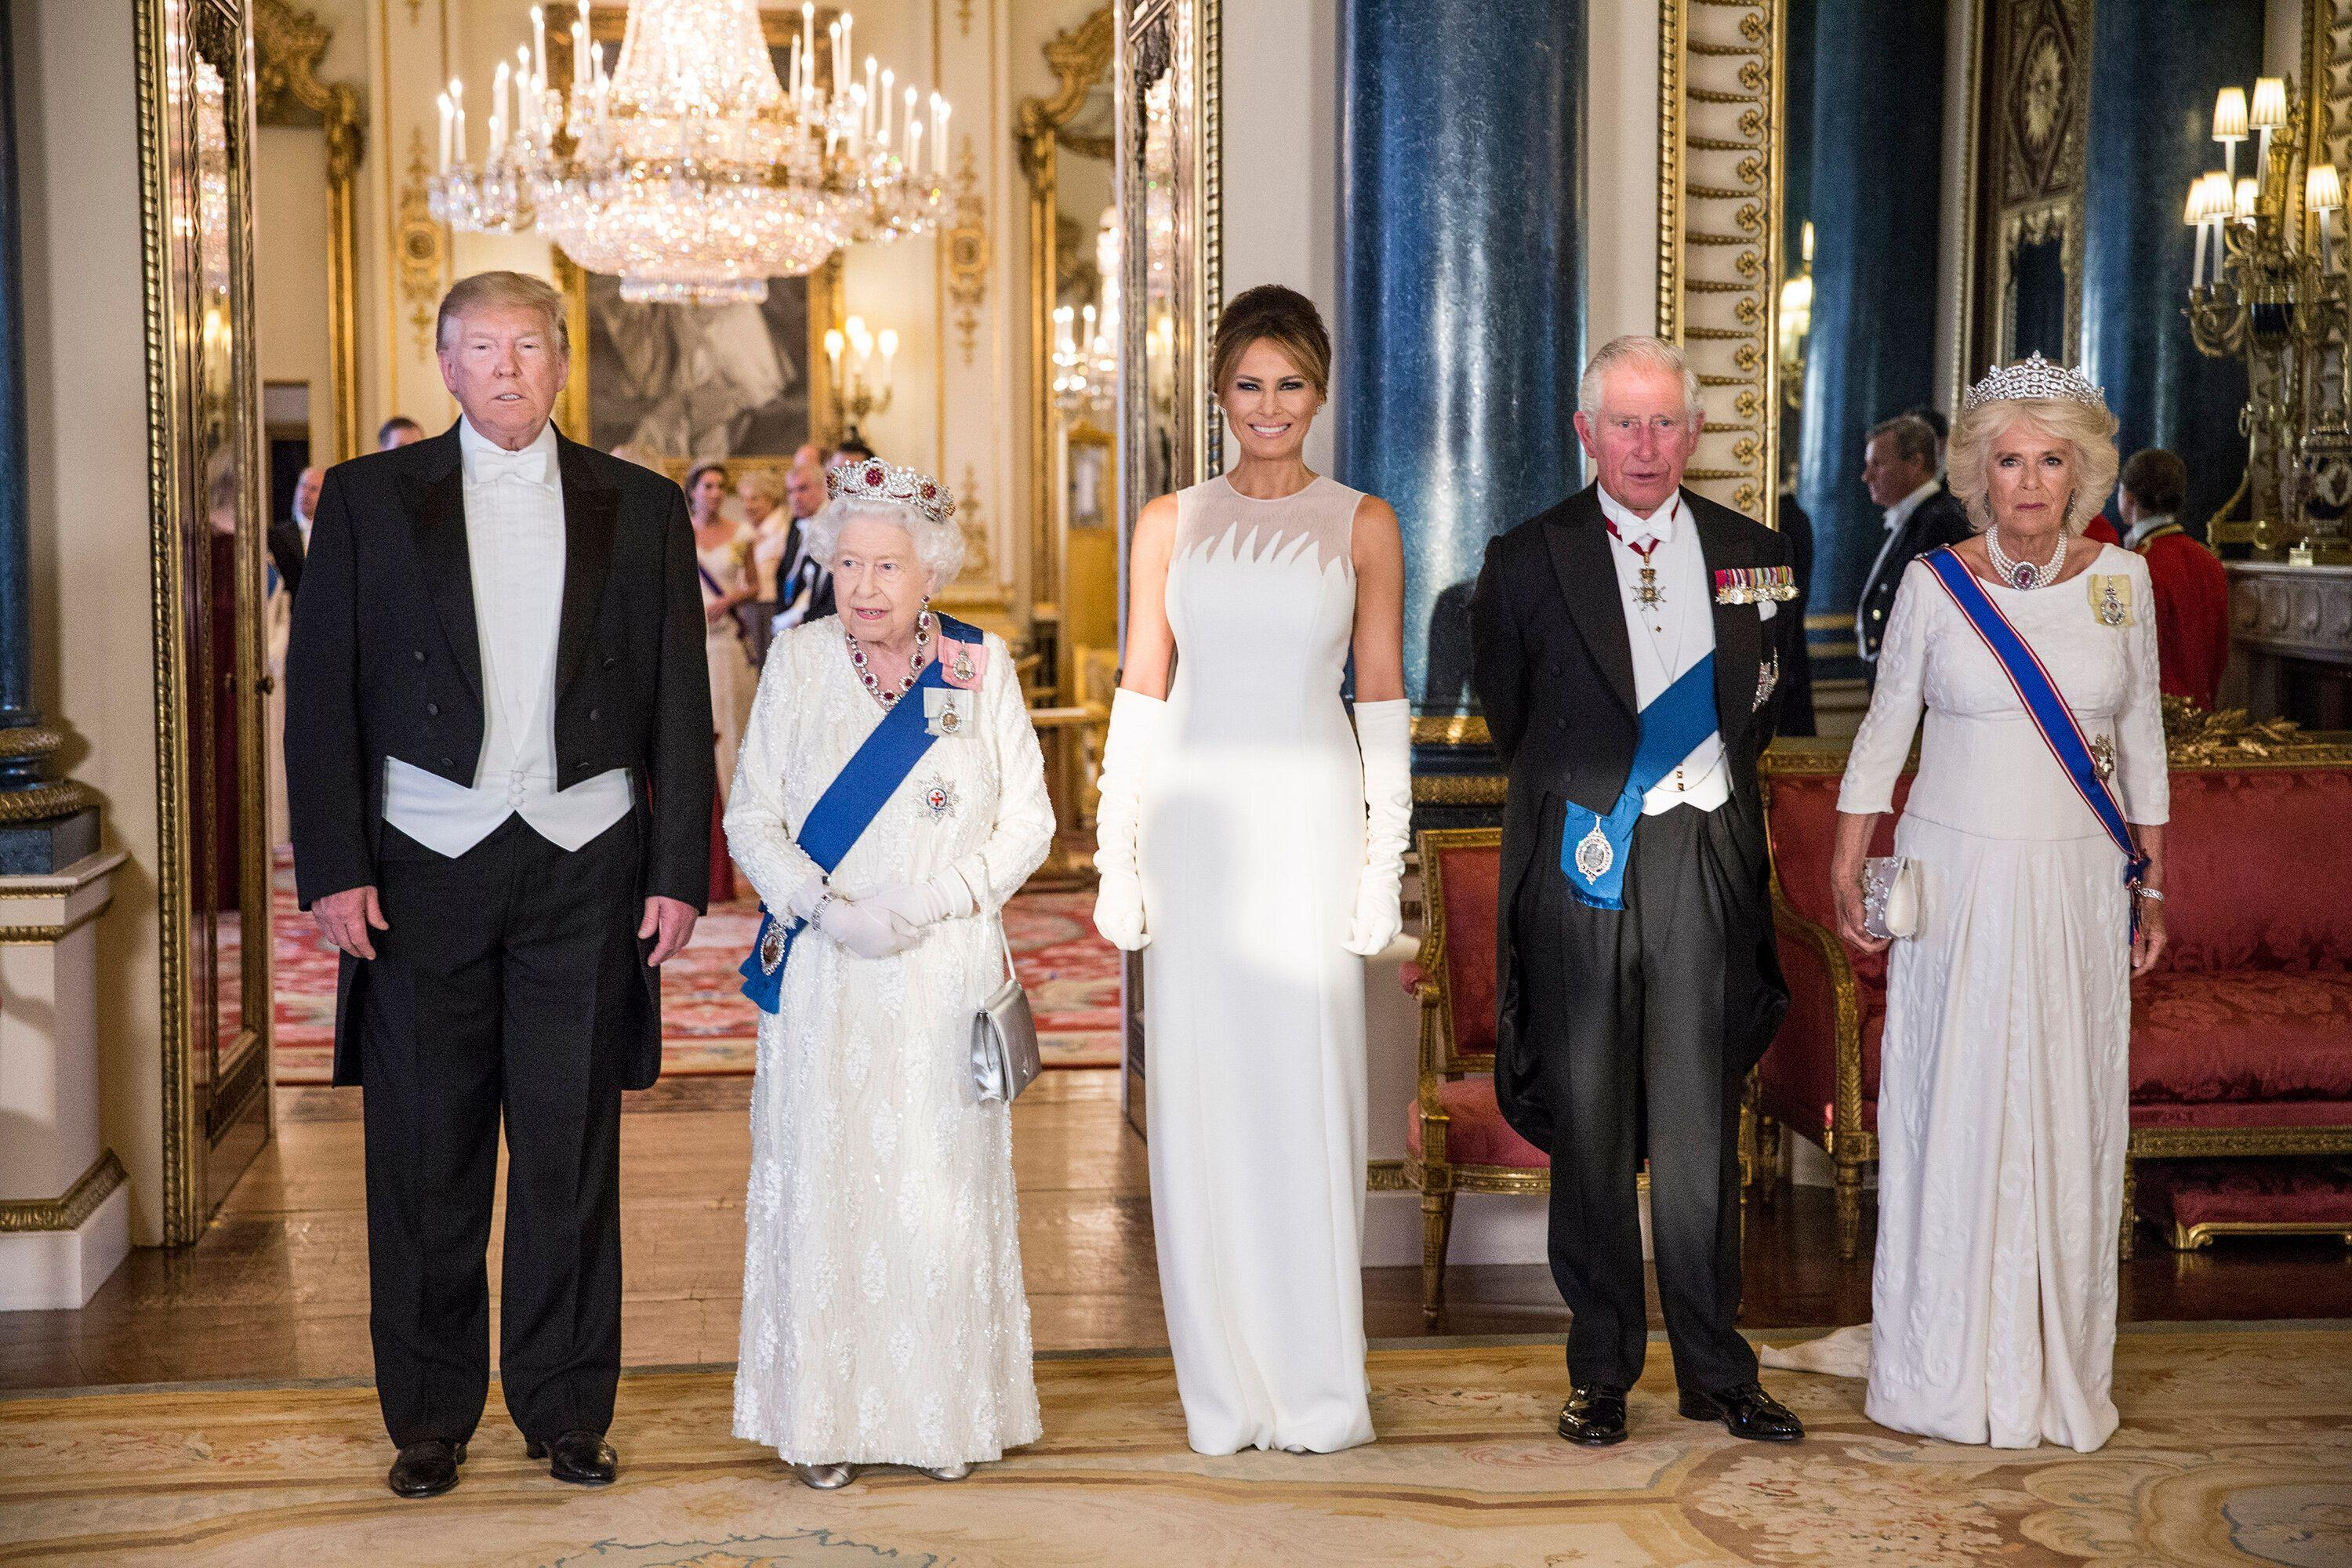 US President Donald Trump, Queen Elizabeth II, Melania Trump, the Prince of Wales and the Duchess of Cornwall, during a group photo ahead of the State Banquet at Buckingham Palace, London [Photo: PA]